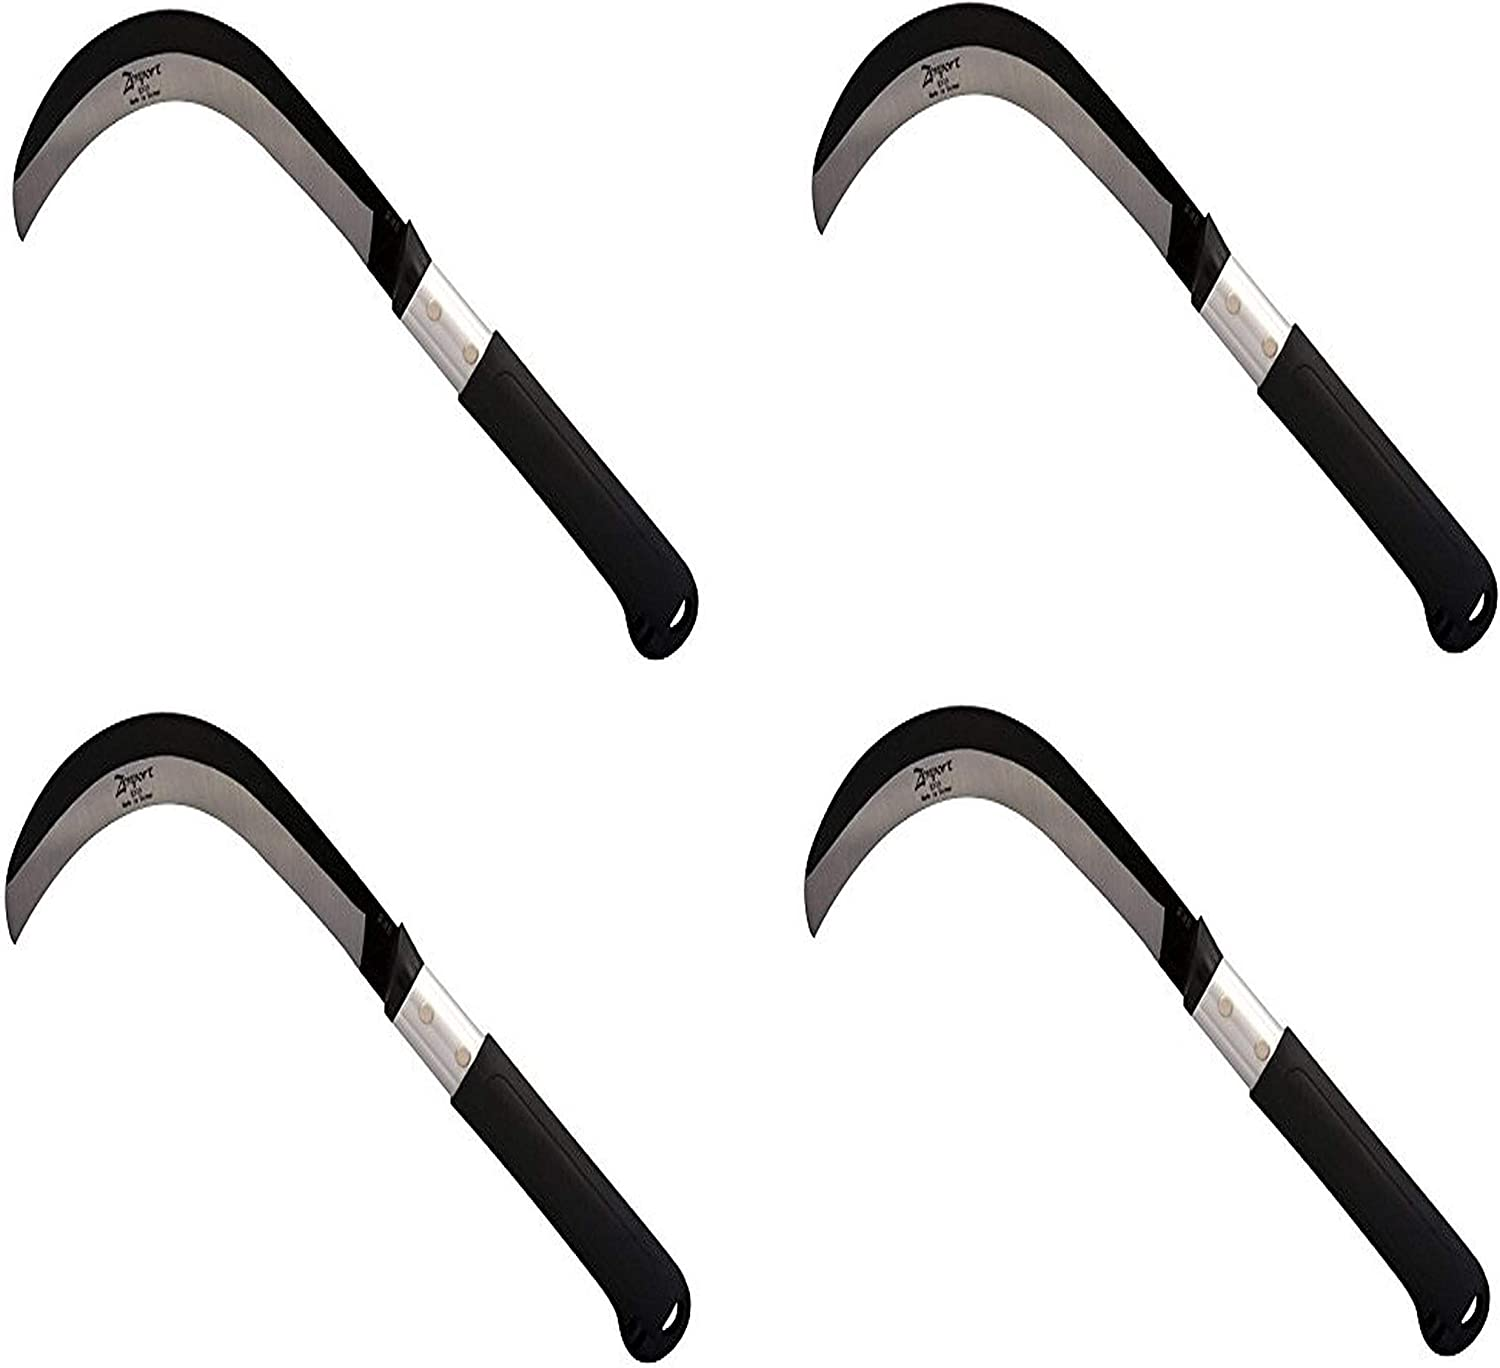 Pack of 2 9 Zenport K310 Brush Clearing Sickle with Carbon Steel Blade and Aluminum Handle